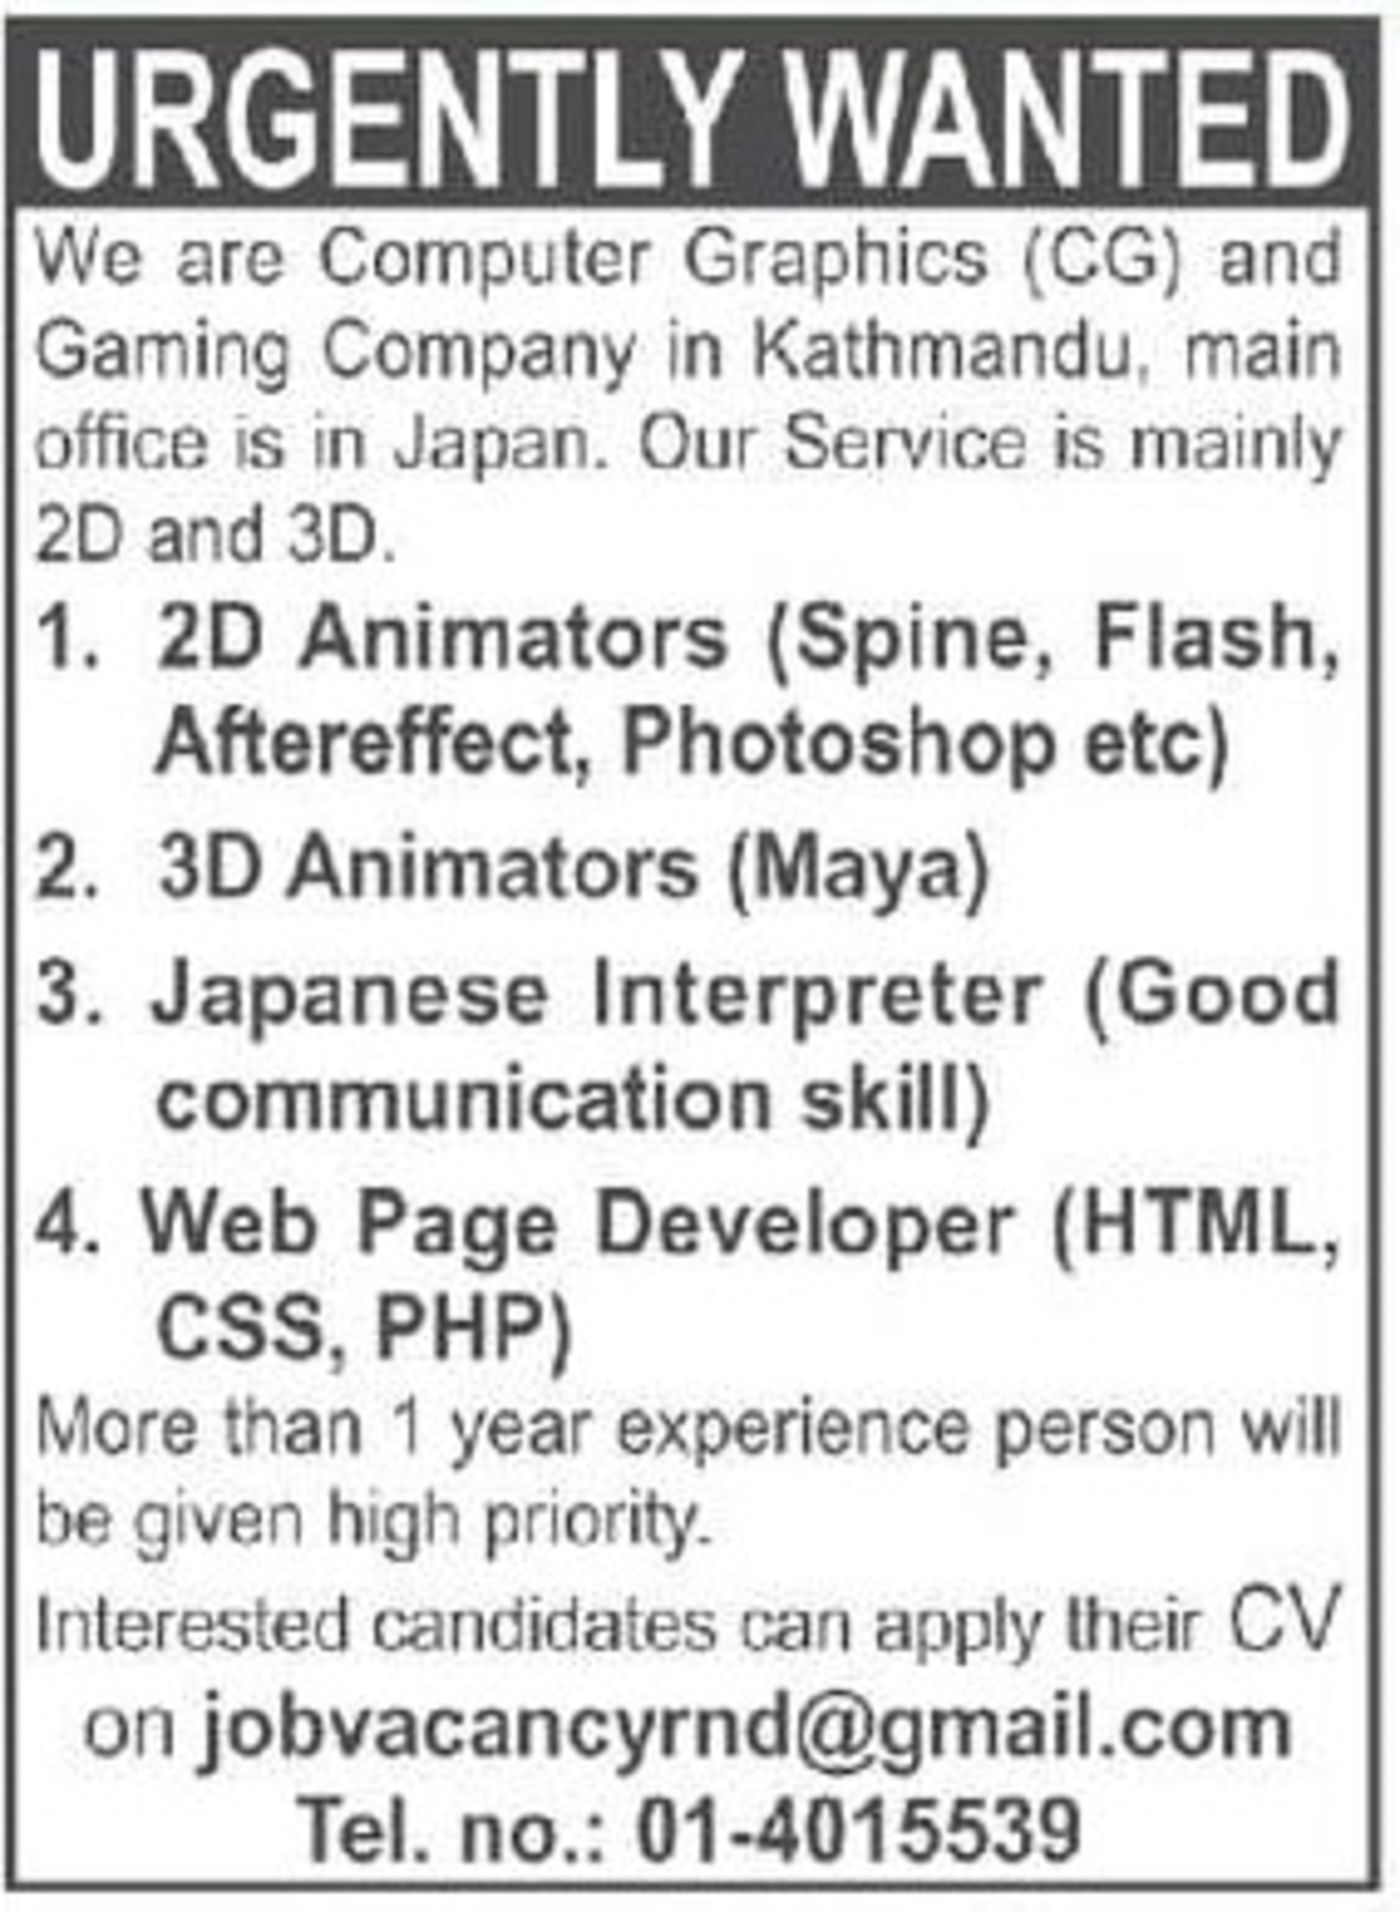 Jobs Nepal - Vacancy - 2D Animators, 3D Animators, Japanese